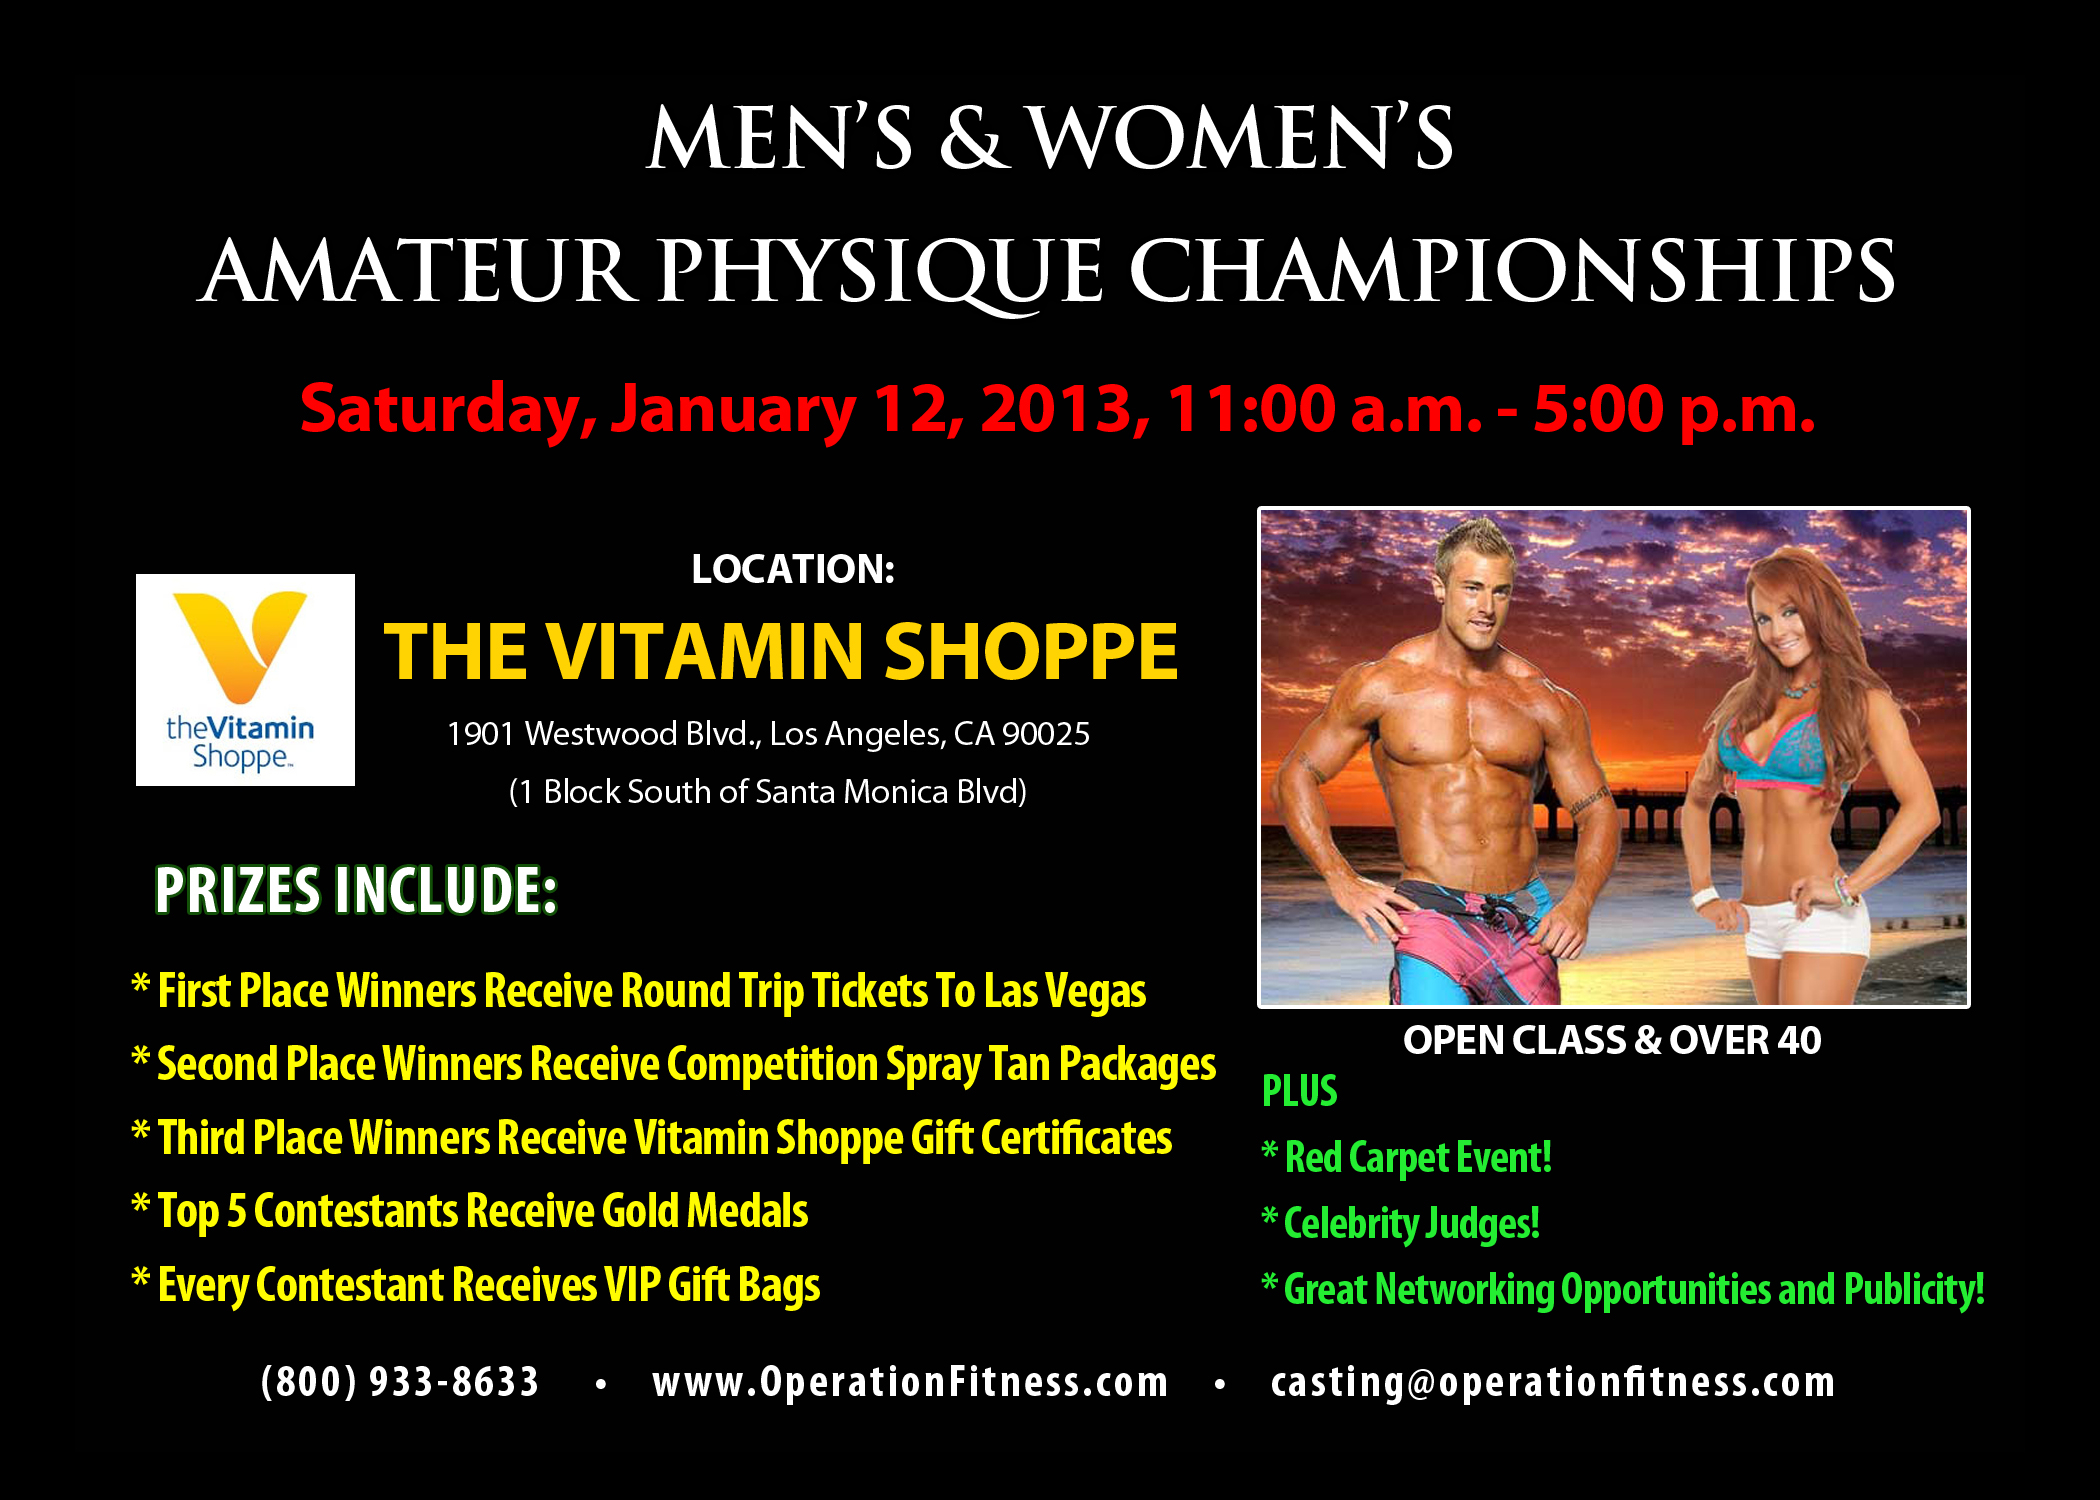 Men's and Women's Amateur Physique Championships